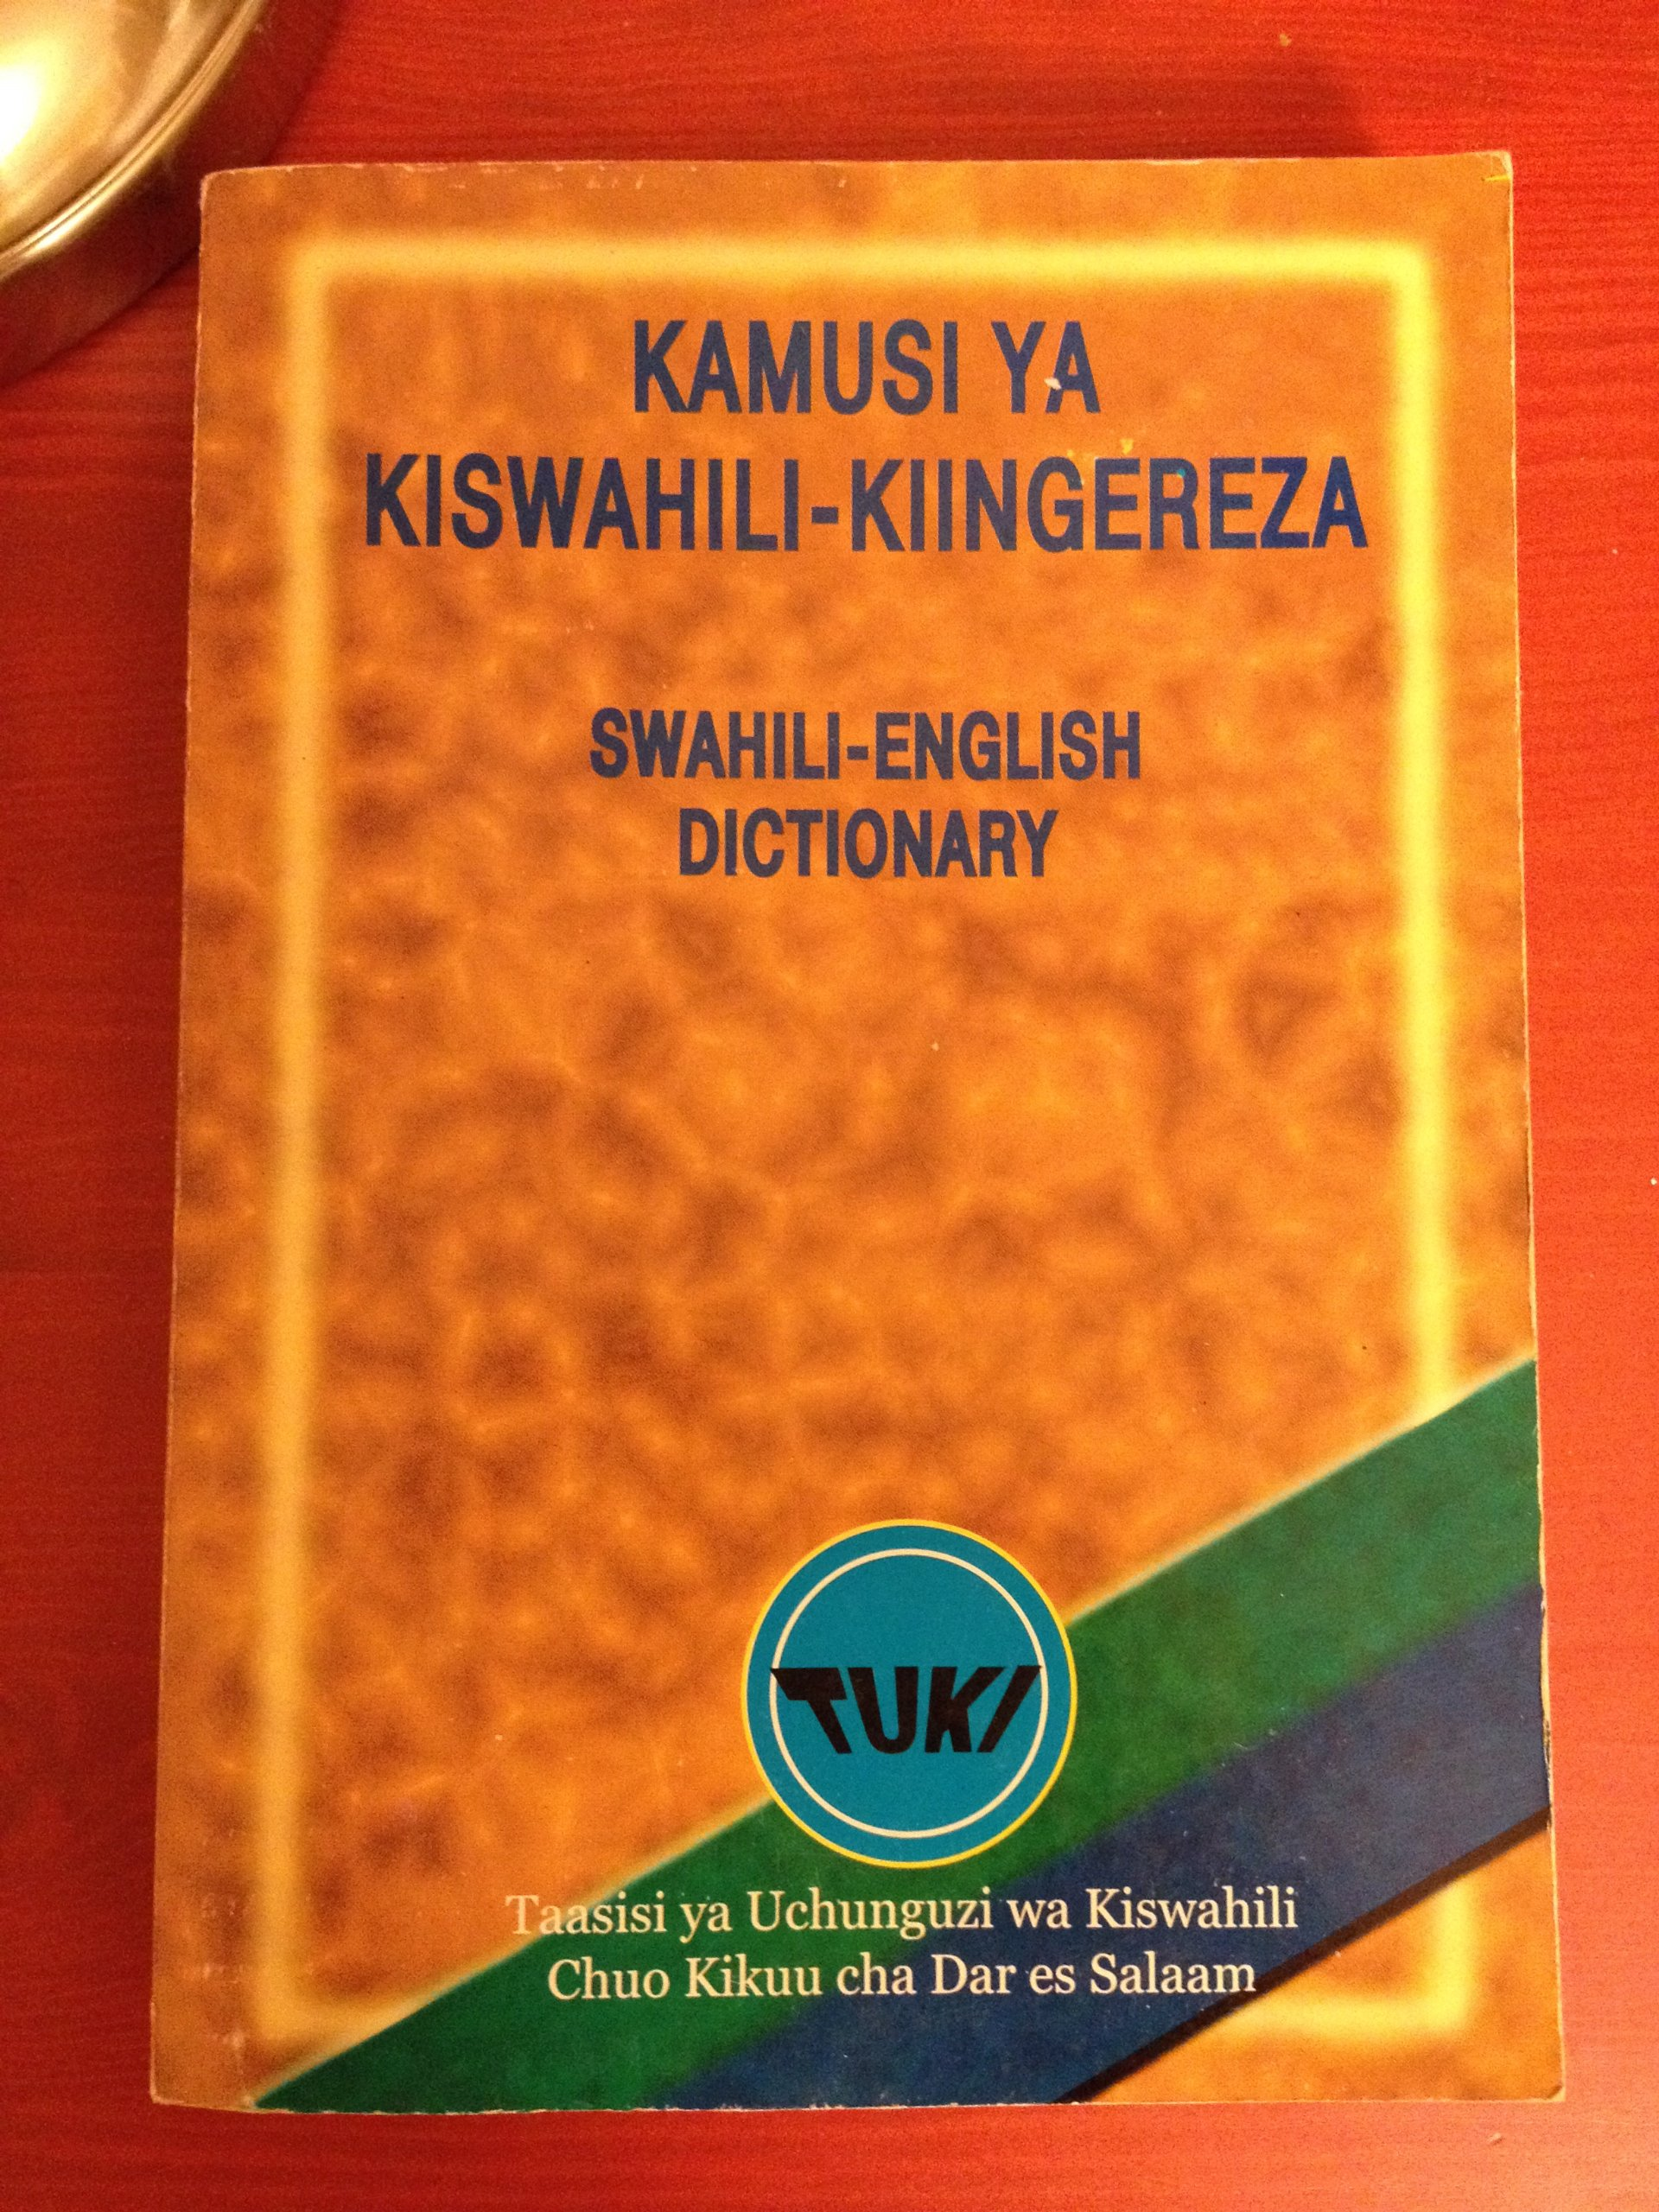 English swahili dictionary free download and install | ios.